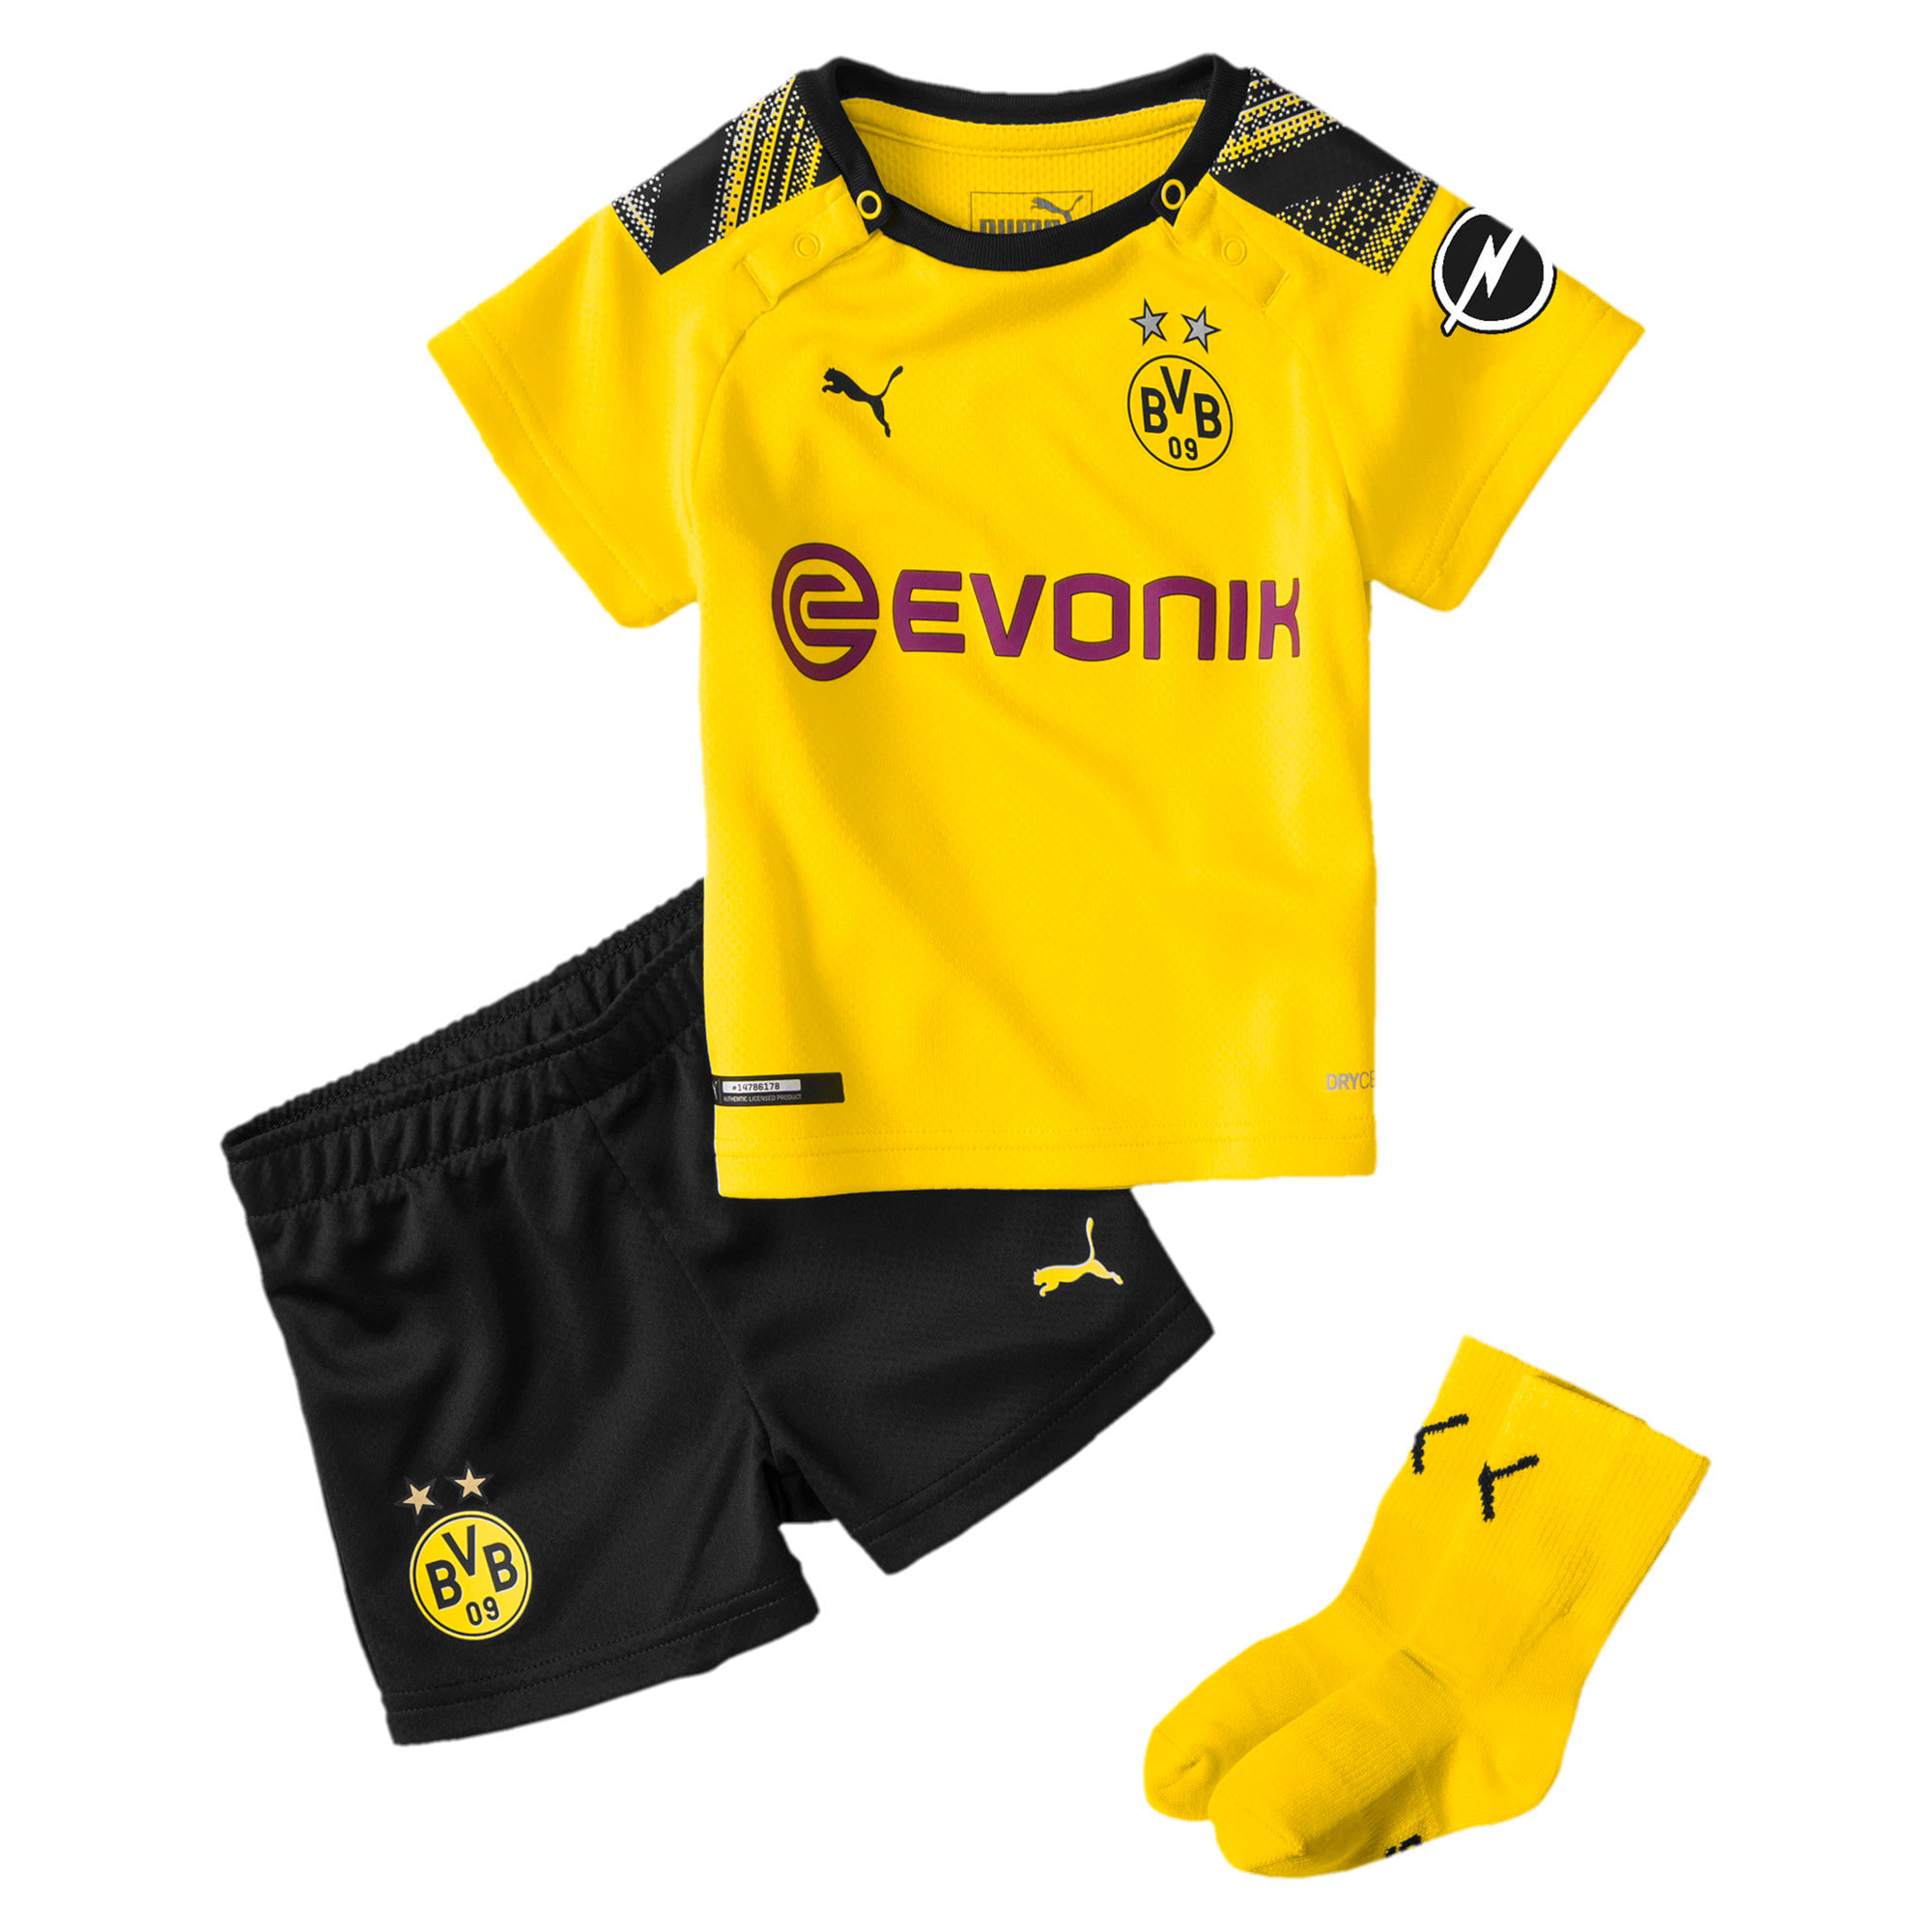 Thumbnail 1 of BVB Babies' Home Mini Kit, Cyber Yellow-Puma Black, medium